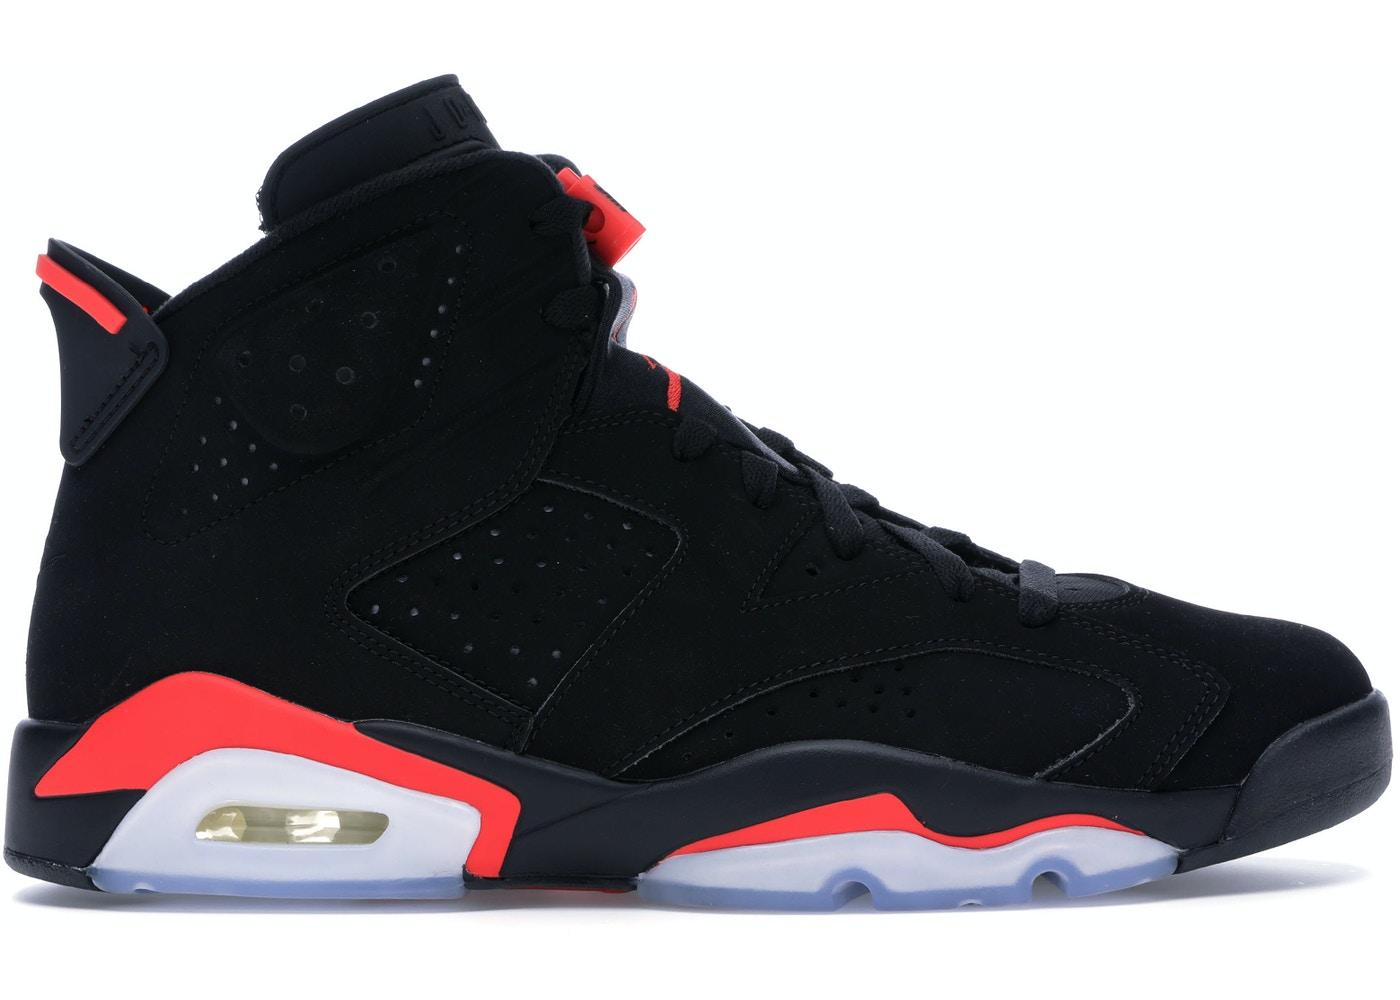 best sneakers 647fd 11d4f Jordan 6 Retro Black Infrared (2019)